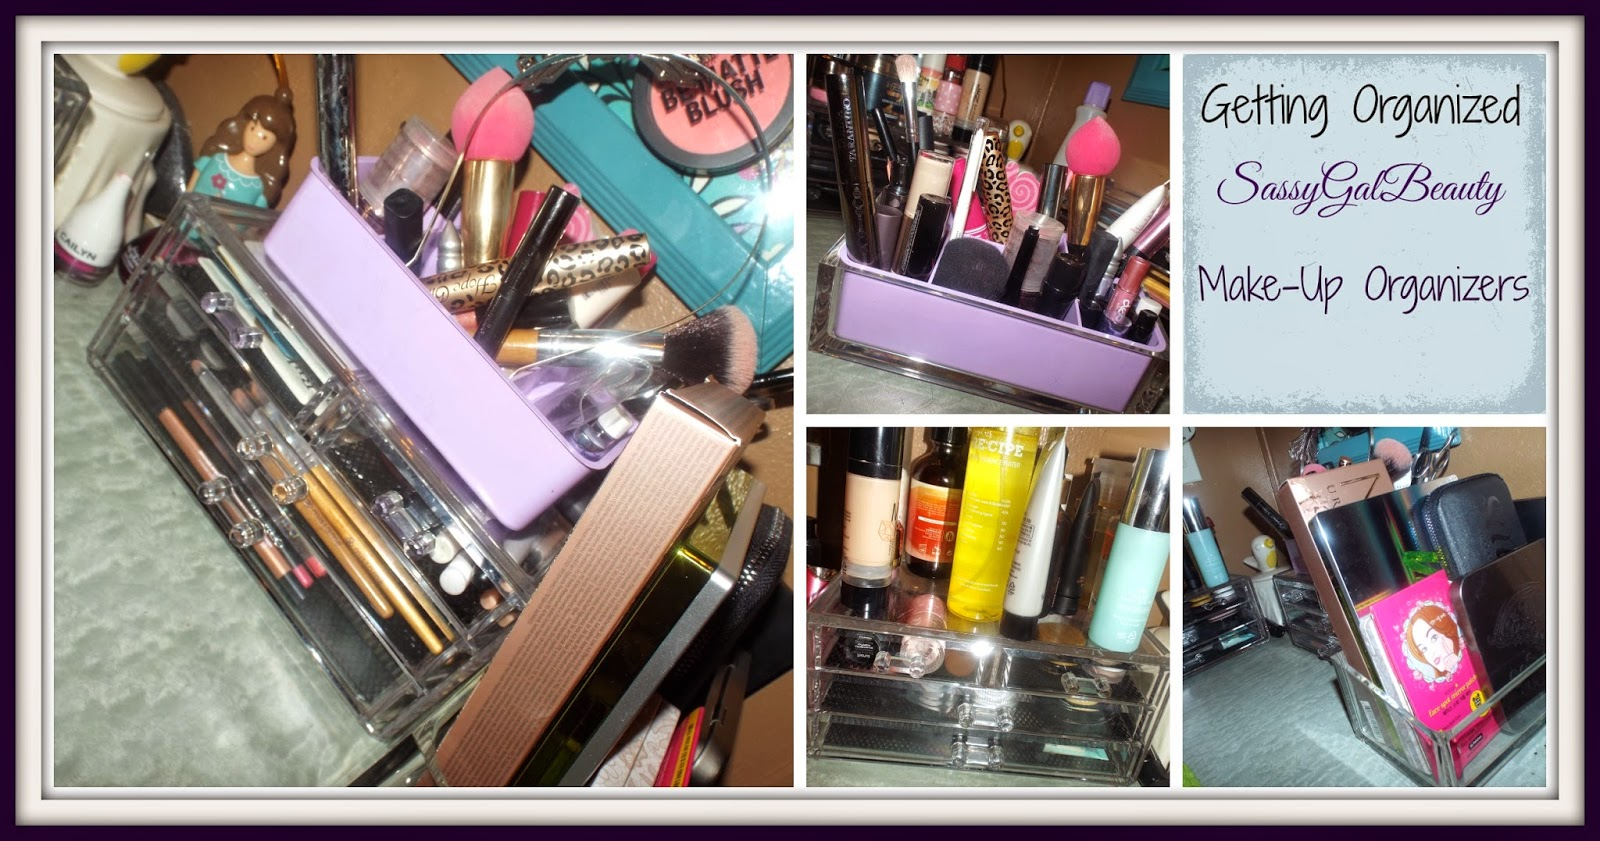 Getting Organized: Makeup Beauty Organizers